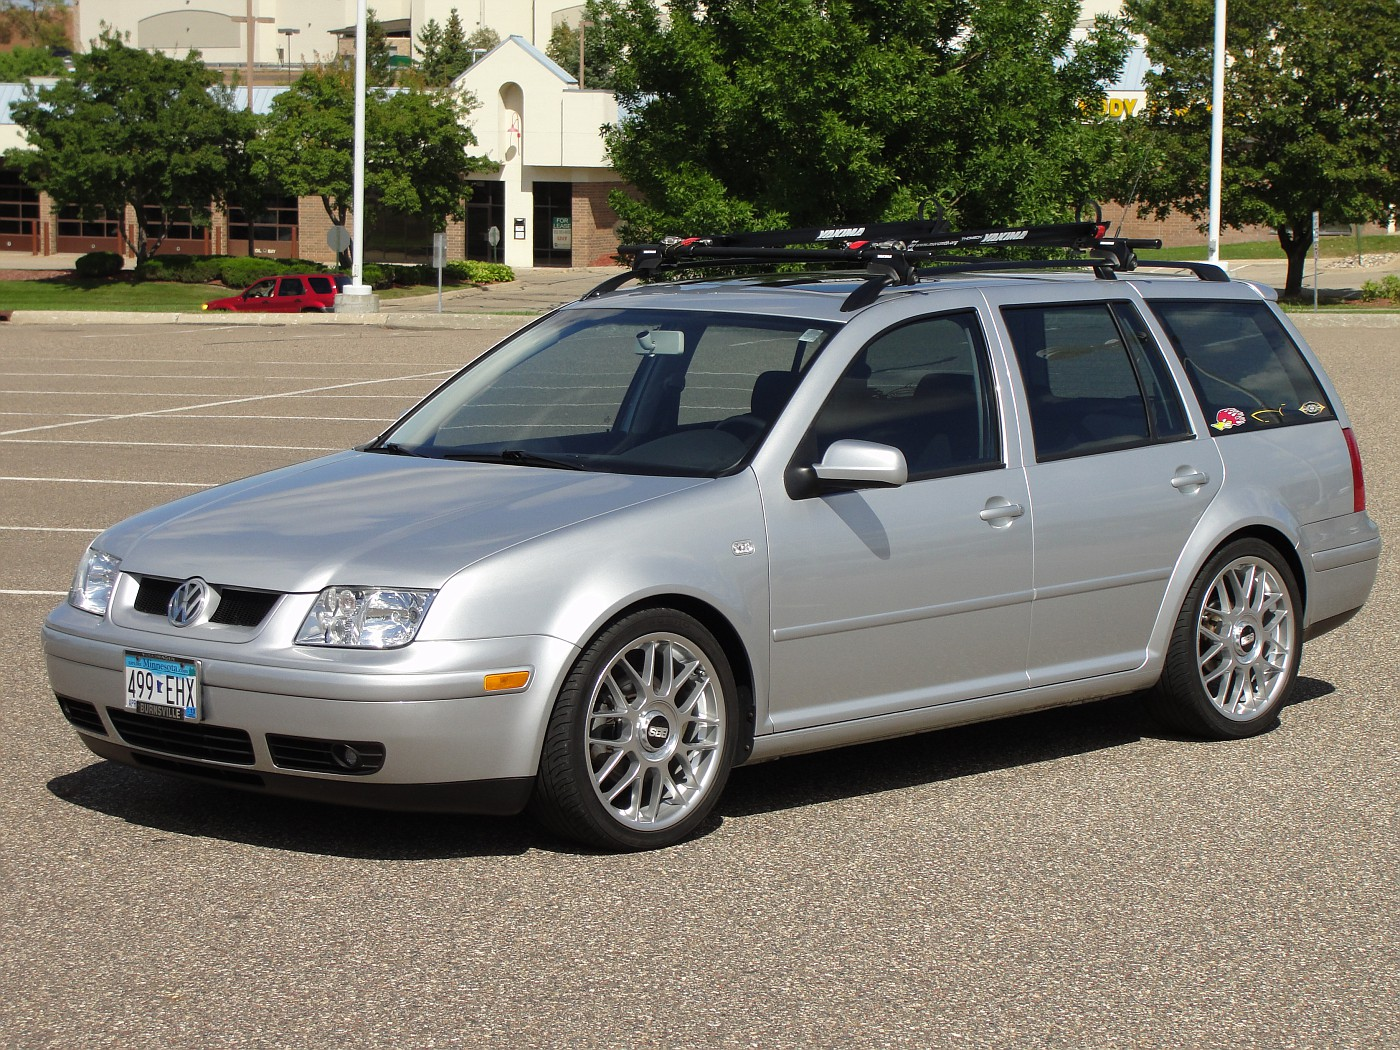 slammed vw jetta 1 8t with Jetta Wagon Rack on Mk4 Jetta additionally Dynamicstance wordpress besides Photo 01 likewise Exterior 46018912 together with Photo 01.